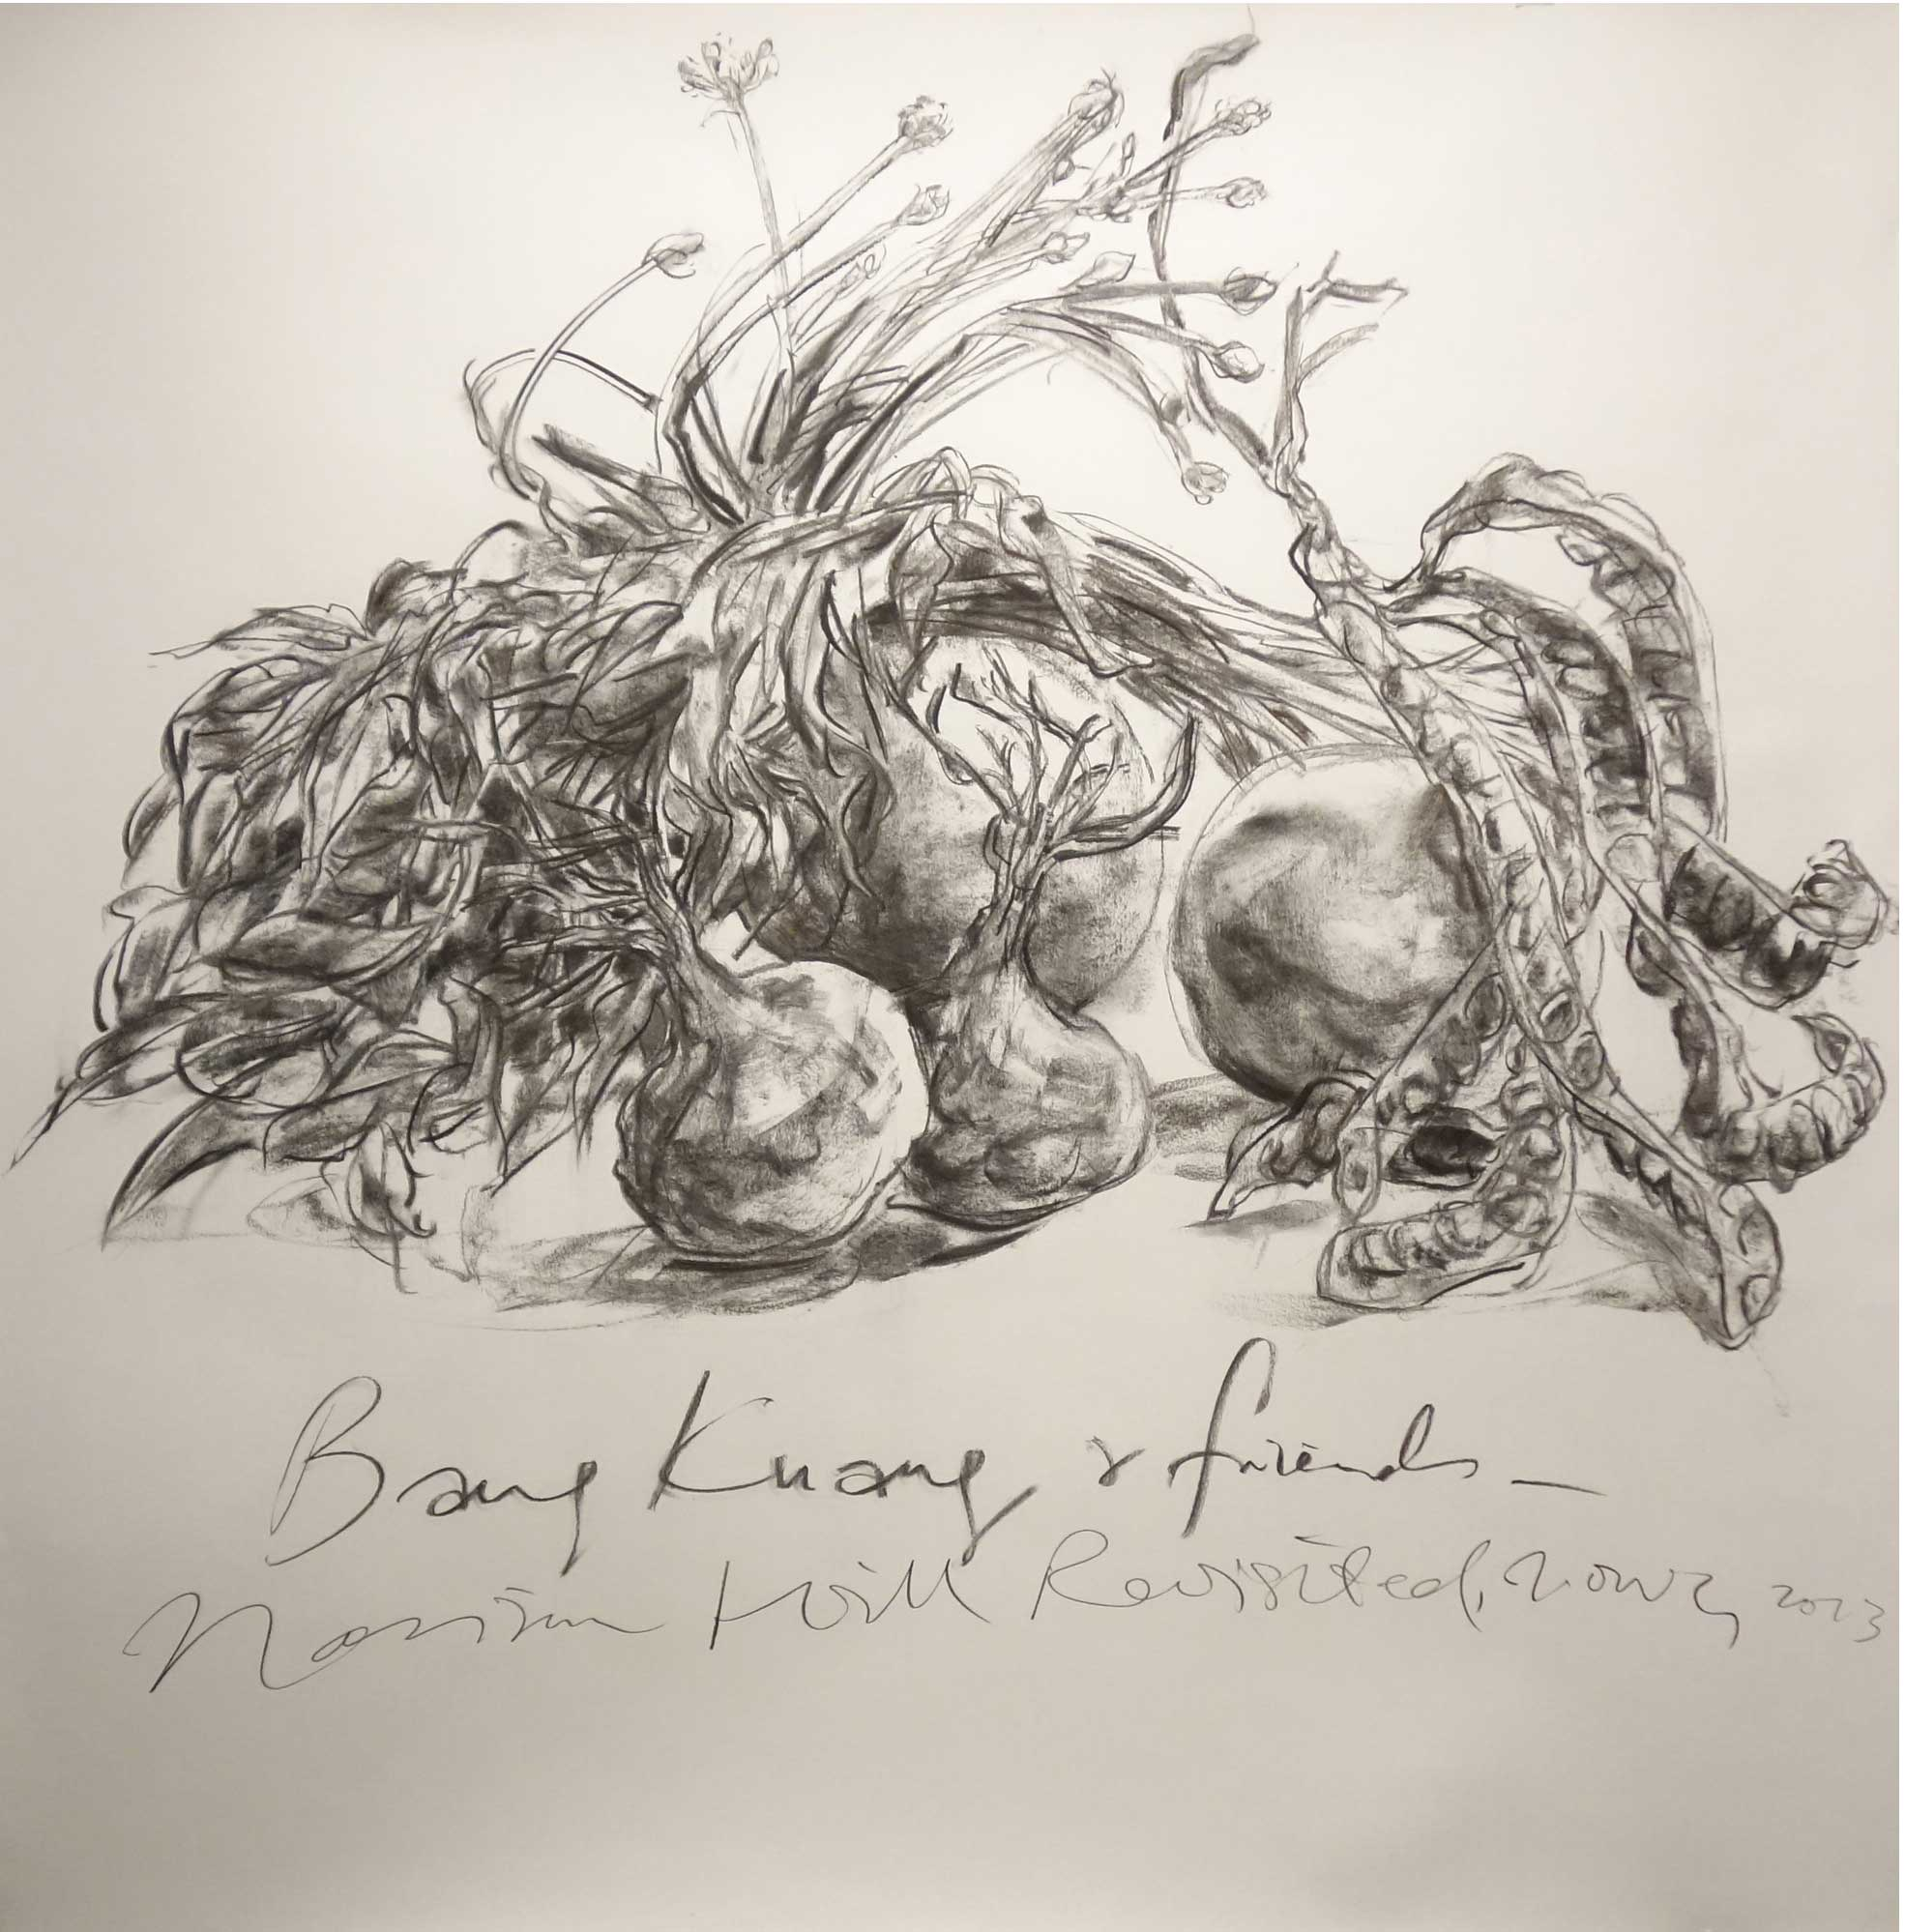 Jimmy ONG  Bang Kuang & friends  2013 Charcoal on paper 120 x 120 cm